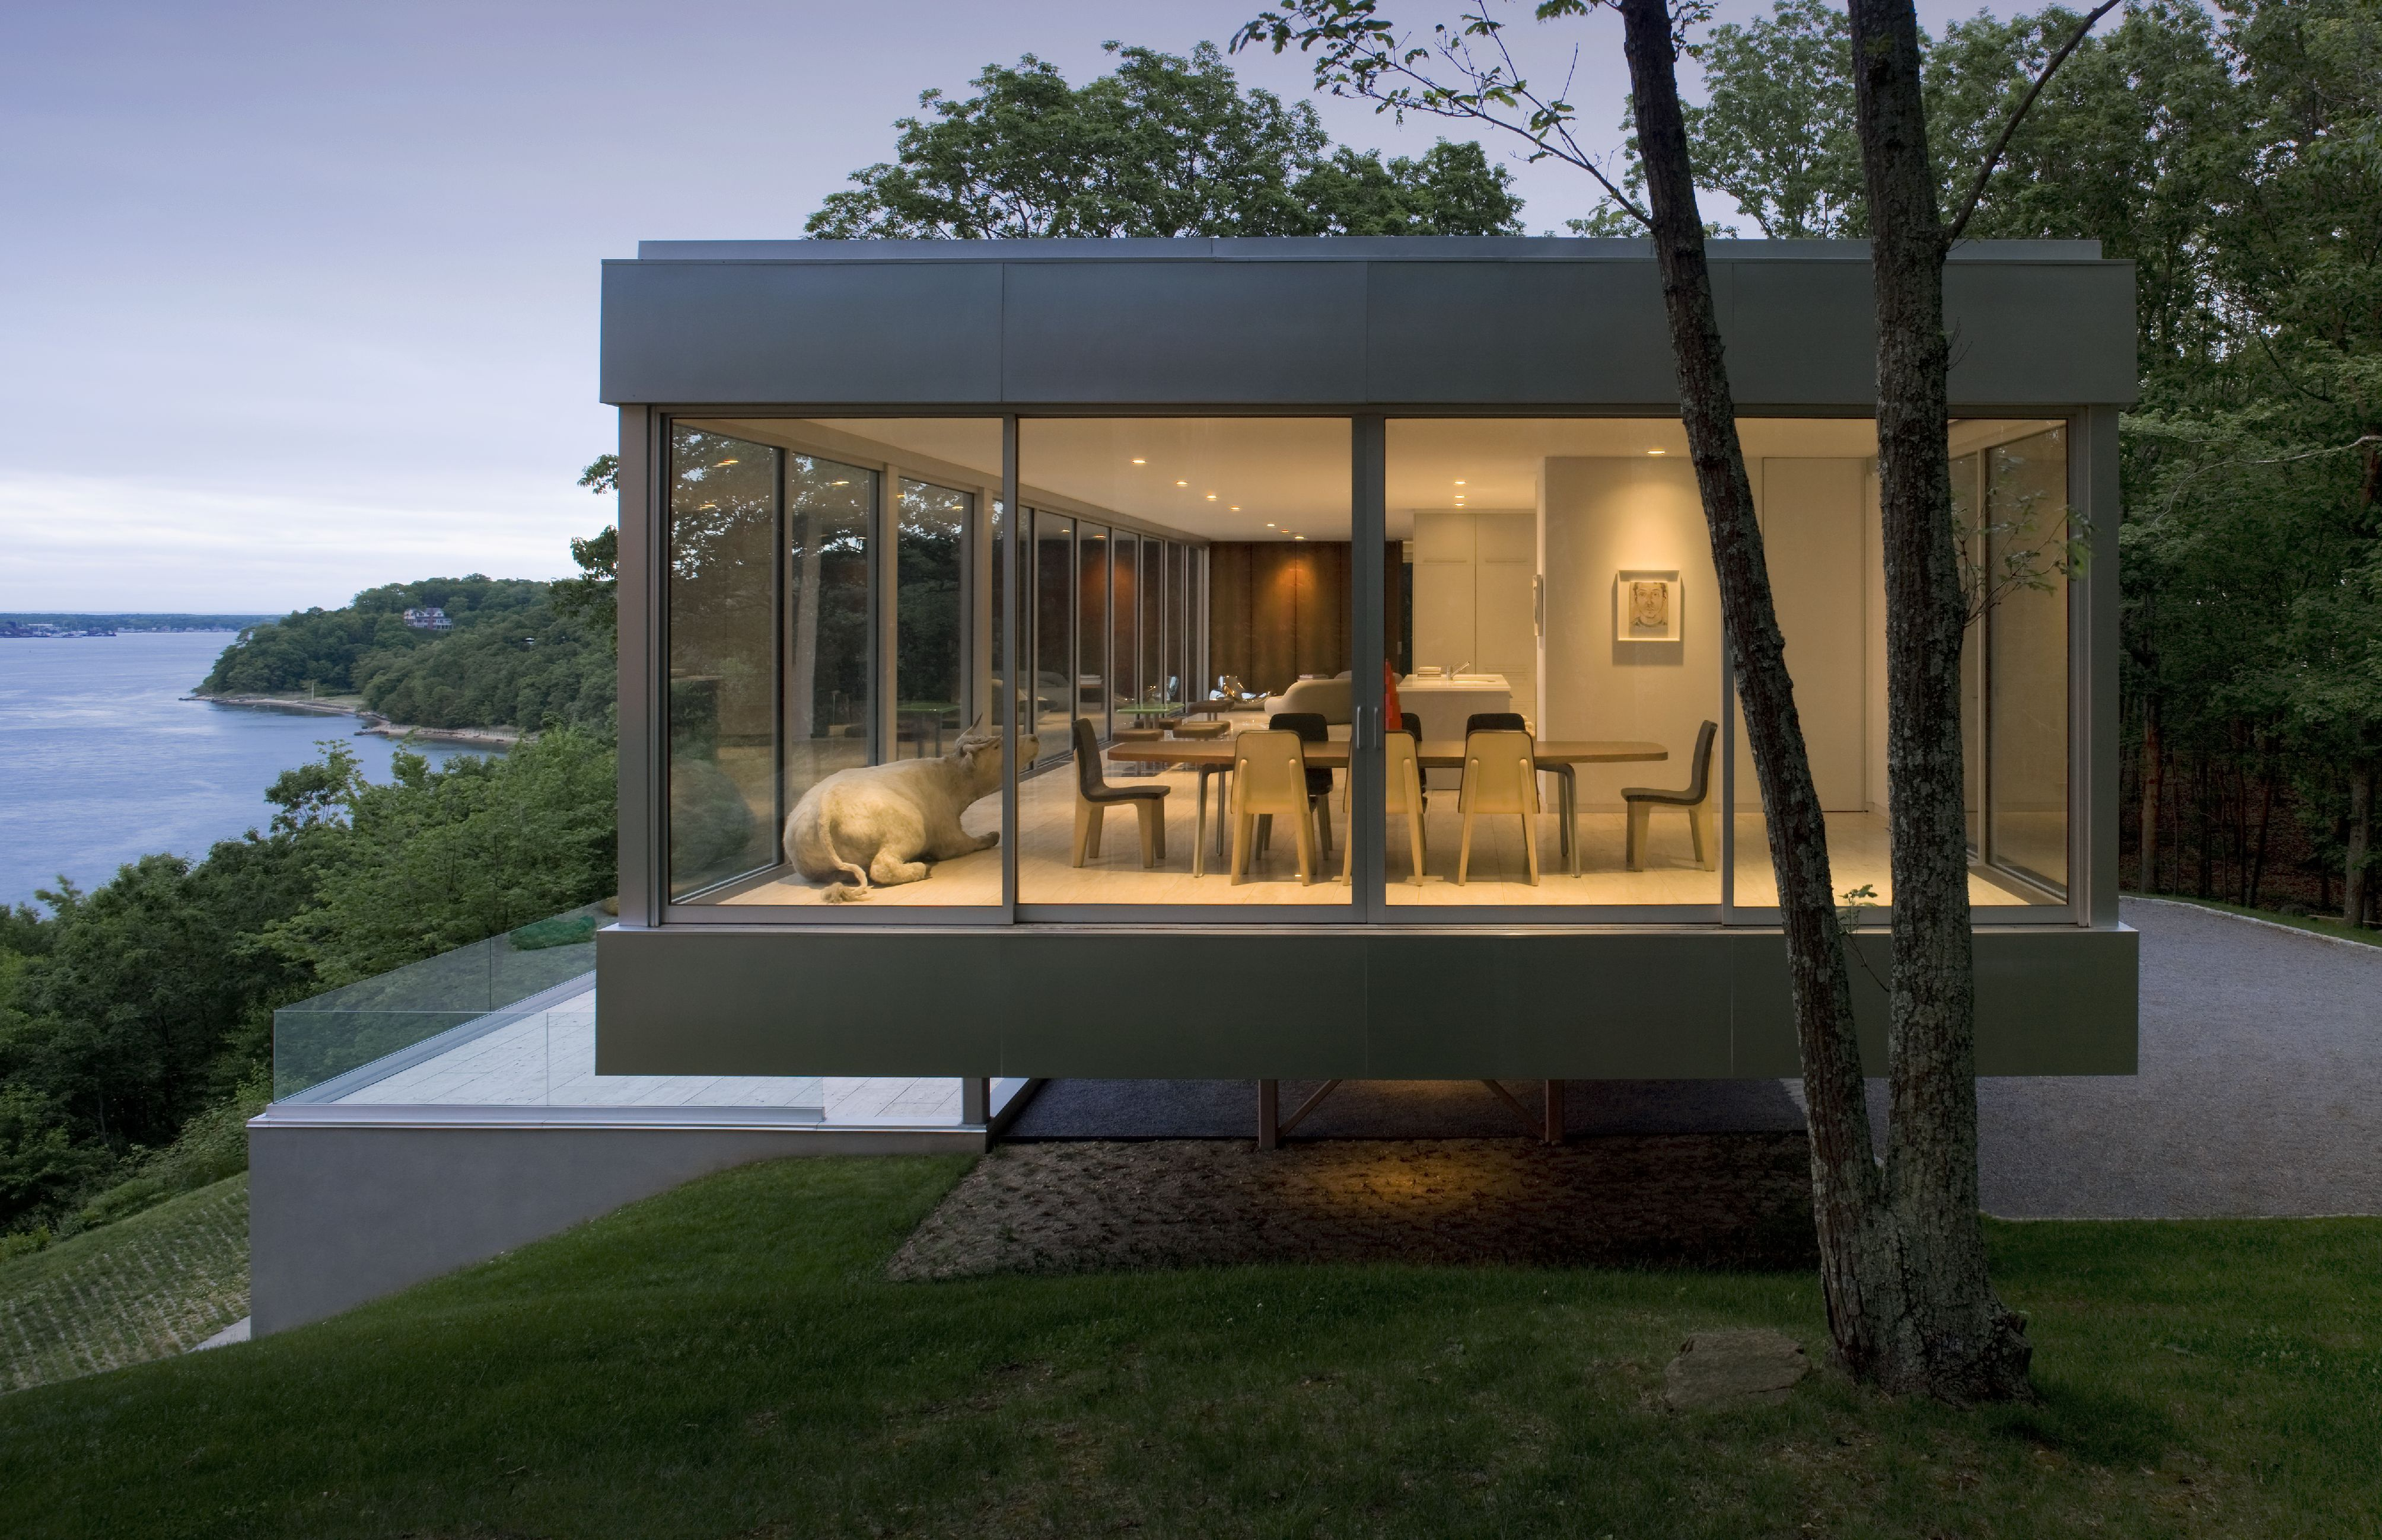 Clearhouse on Shelter island, NY by Stuart Parr Design